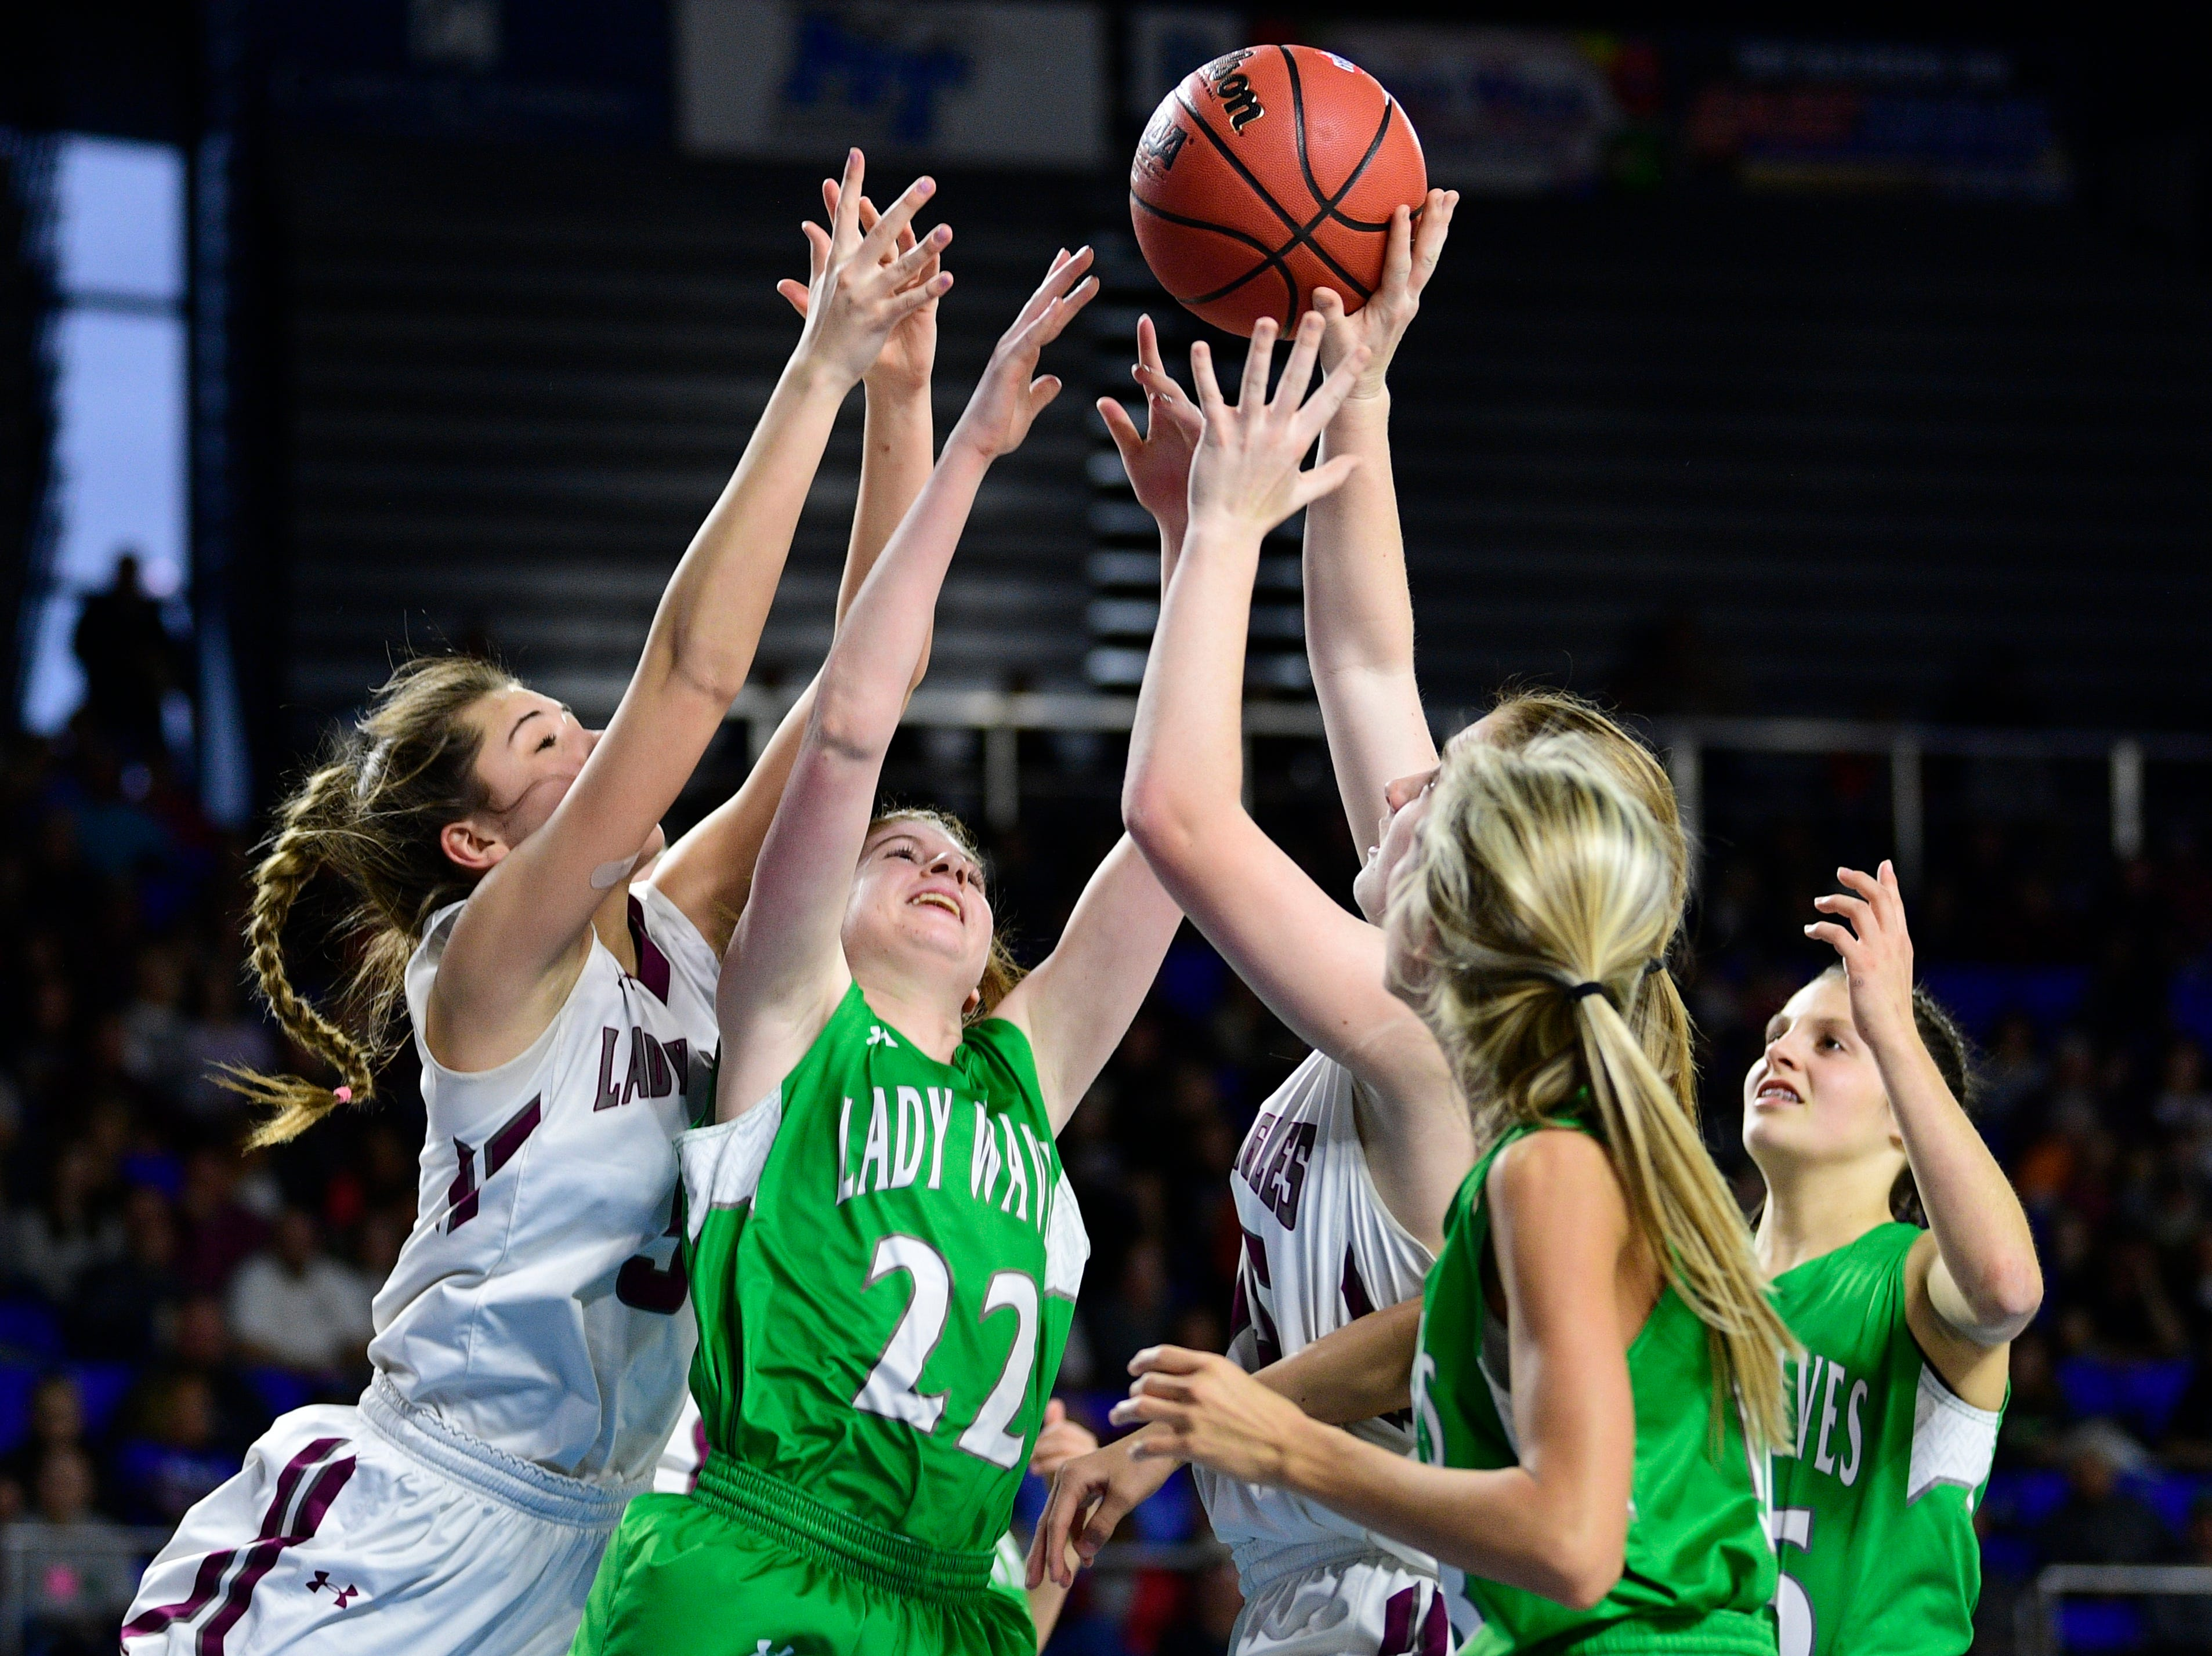 Players go after the ball during a game between Eagleville and Midway at the TSSAA girls state tournament at the Murphy Center in Murfreesboro, Tennessee on Thursday, March 7, 2019.